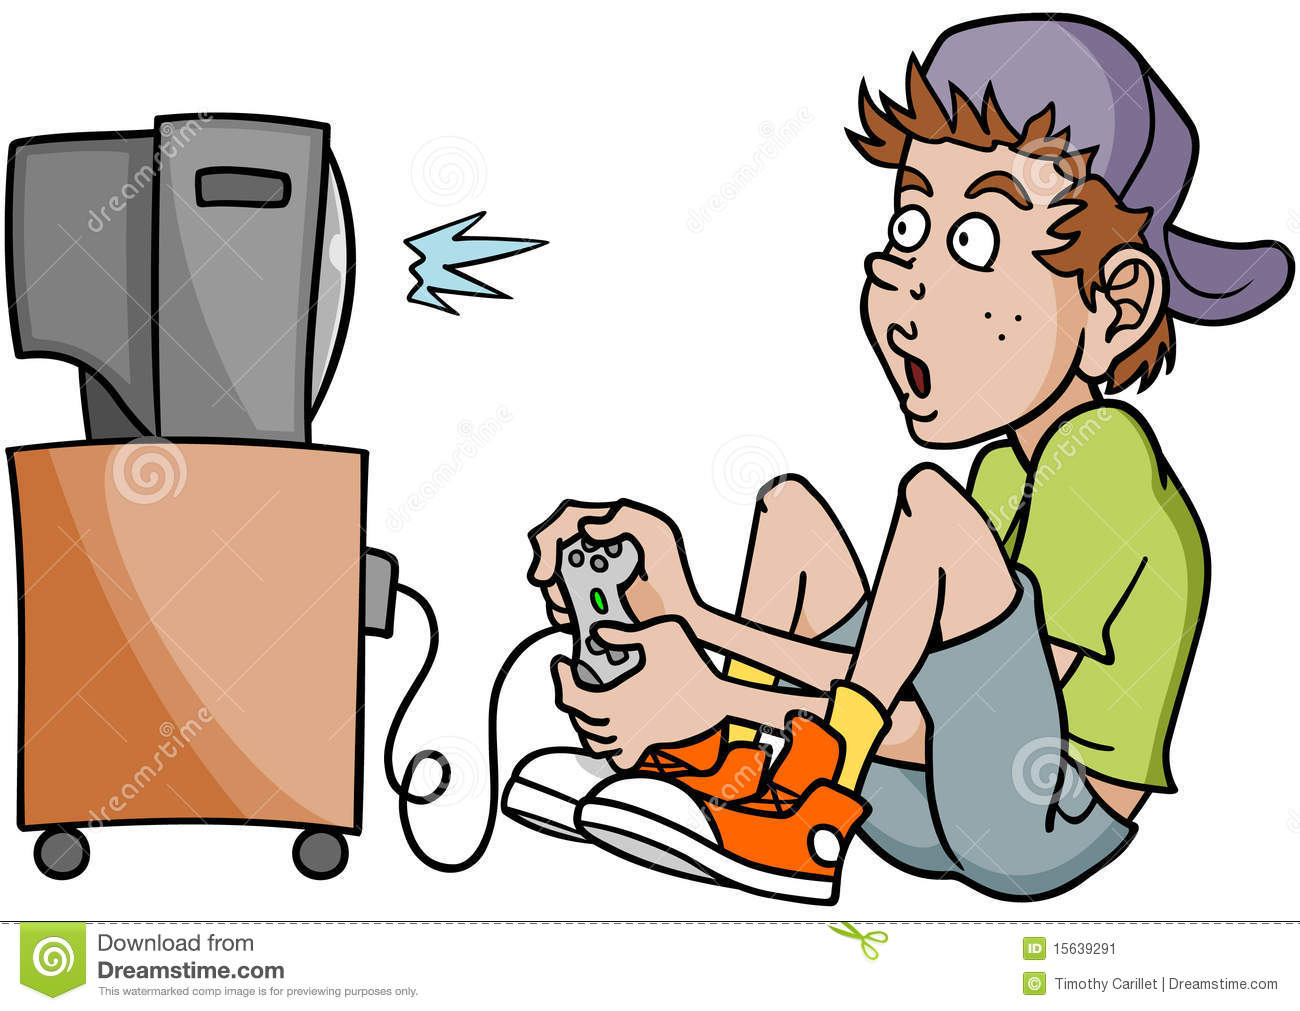 Person Playing Video Games Cartoon